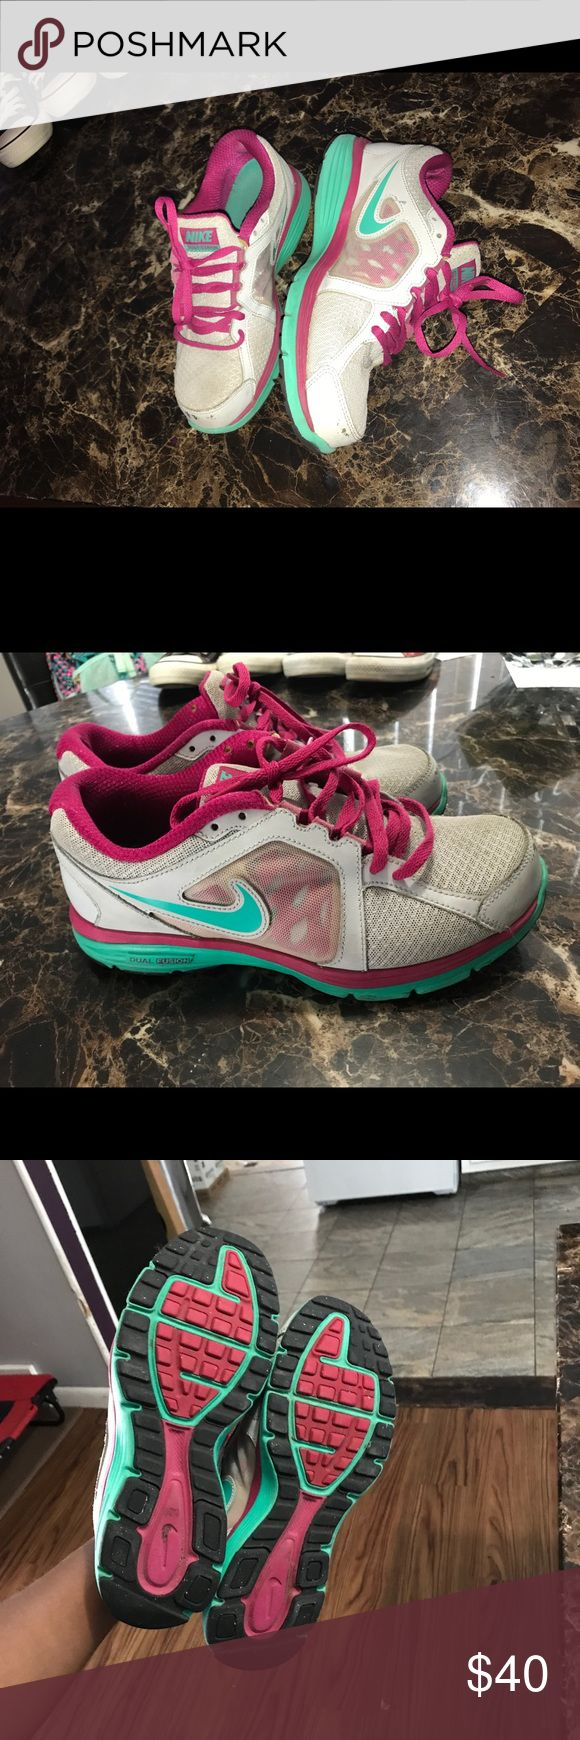 NIKE Dual Fusion Run Sneakers 👟👟 ✨✨ Perfect running sneakers!! VERY COMFORTABLE, little bit of skuff marks on the front but nothing too crazy. Great deal !! ✨✨ Nike Shoes Sneakers